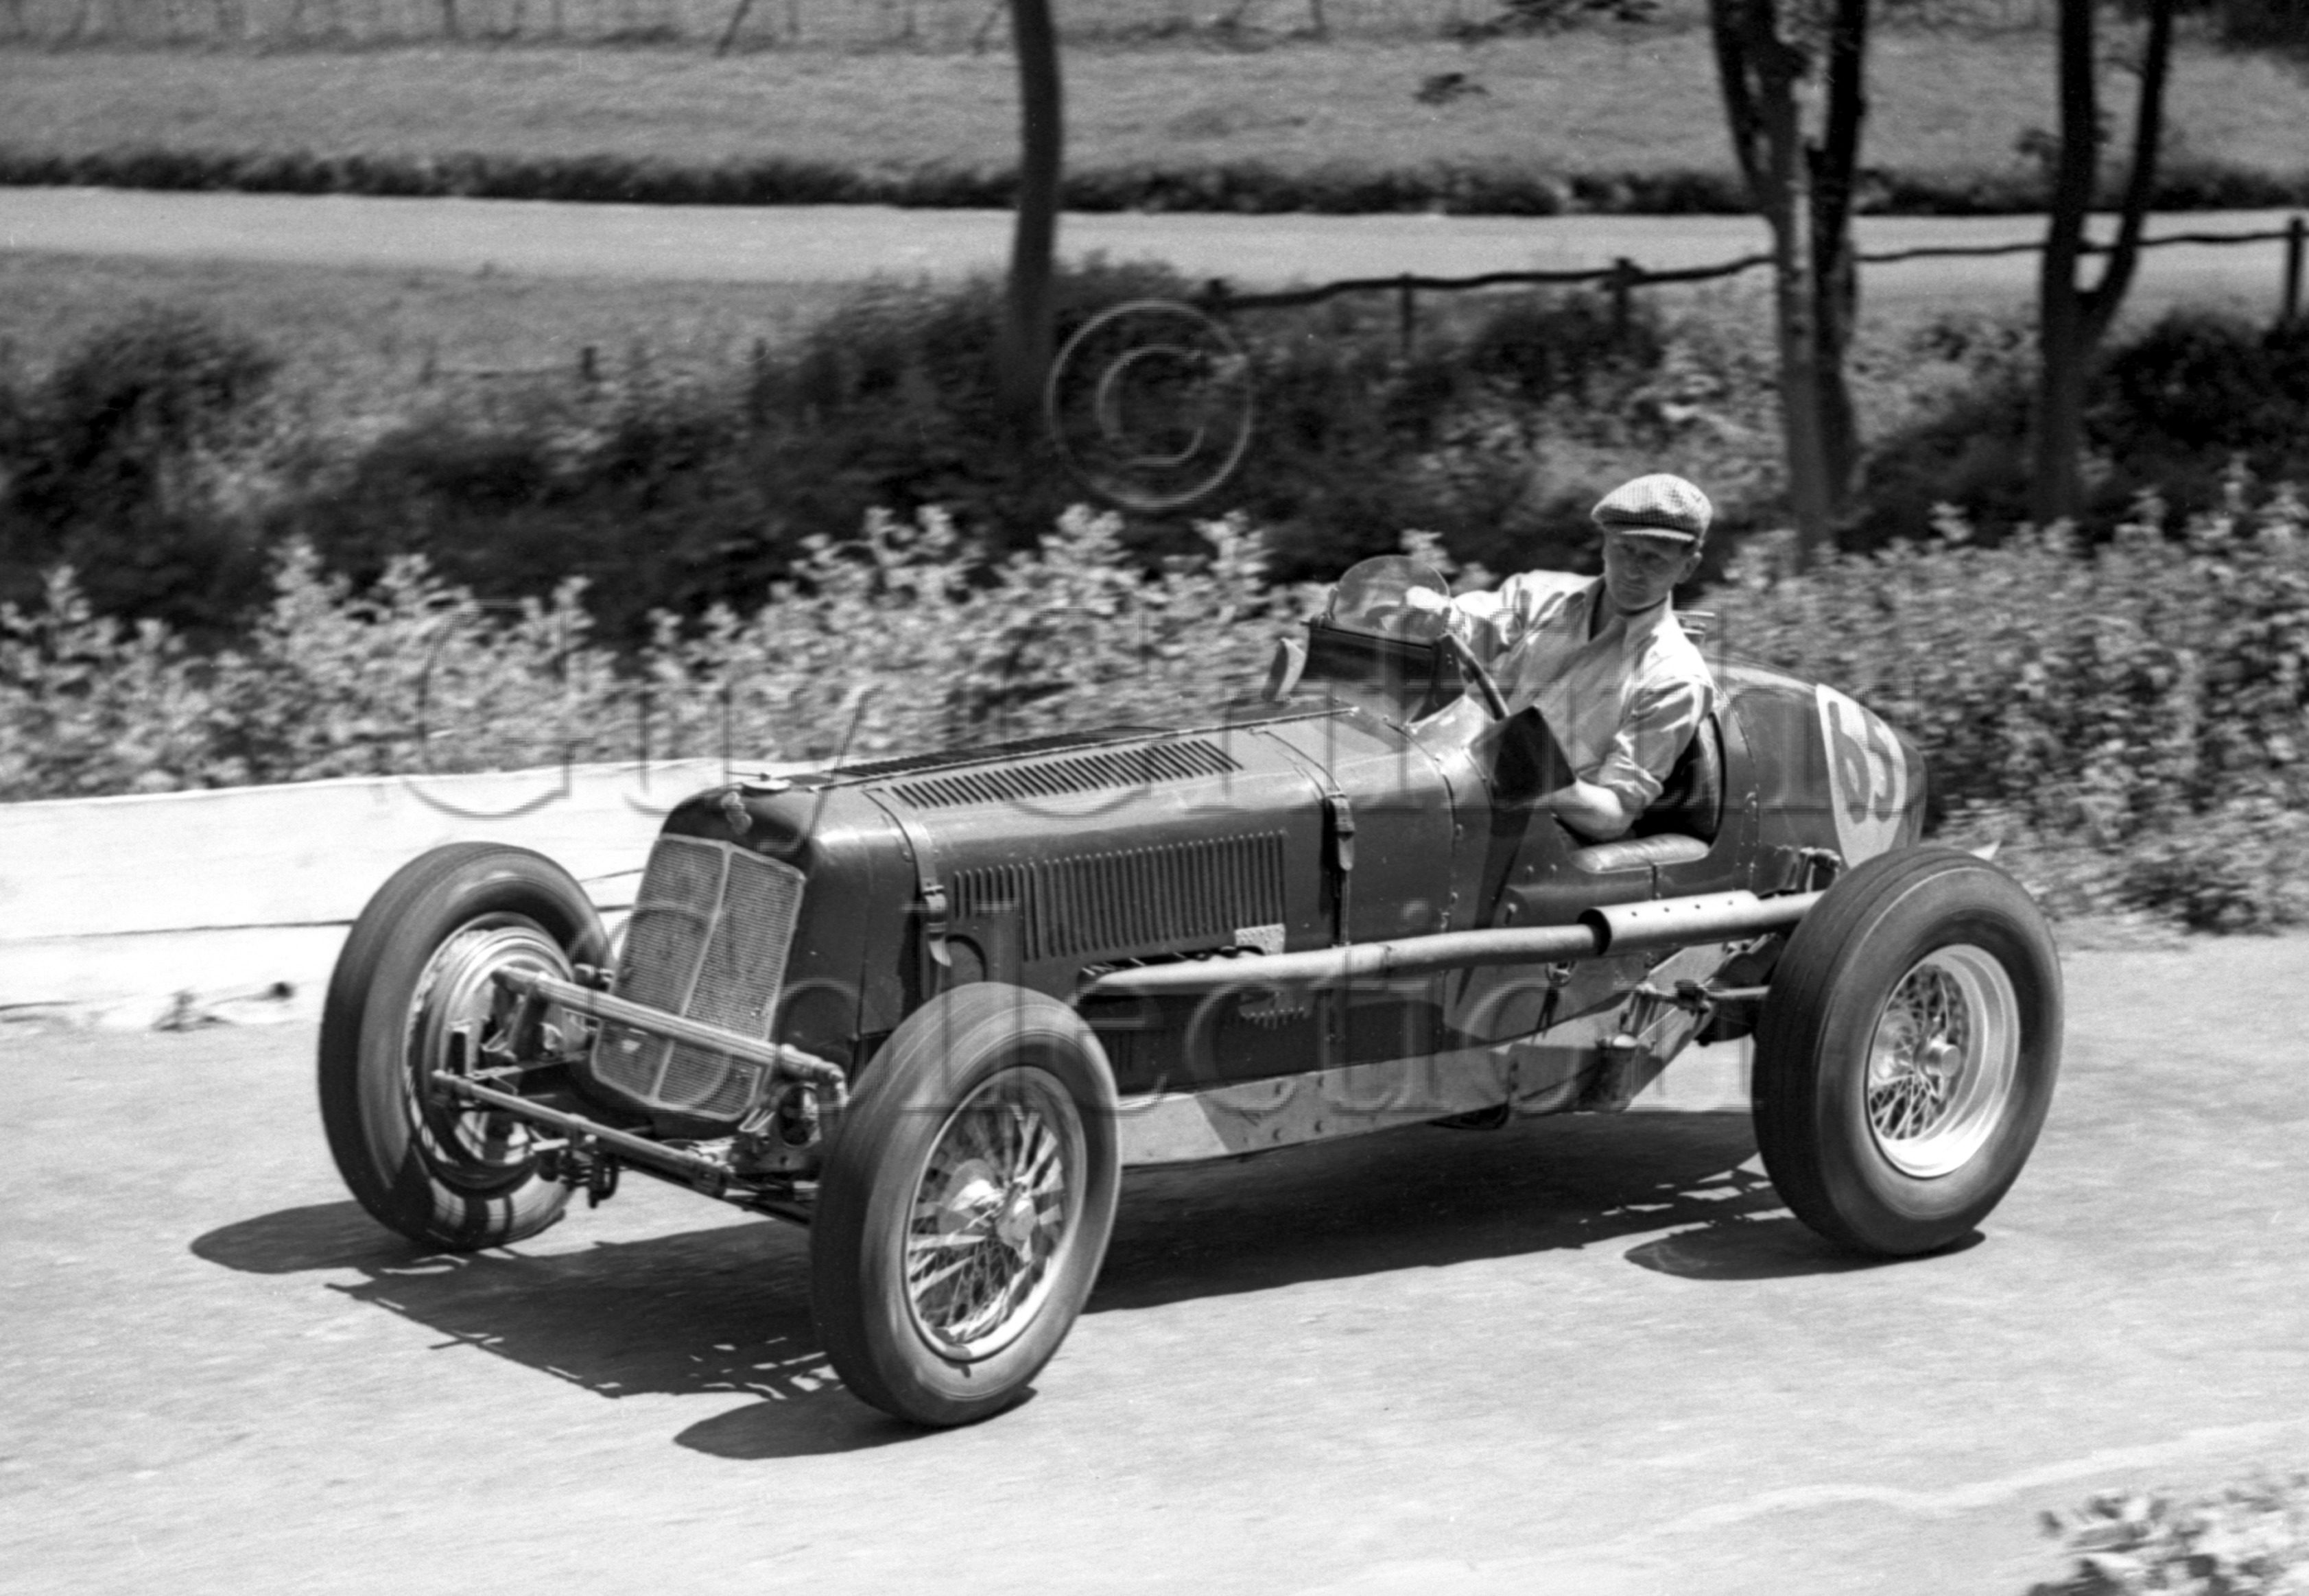 16-146–P-N-Whitehead–ERA-Prescott–12-06-49.jpg - The Guy Griffiths Collection